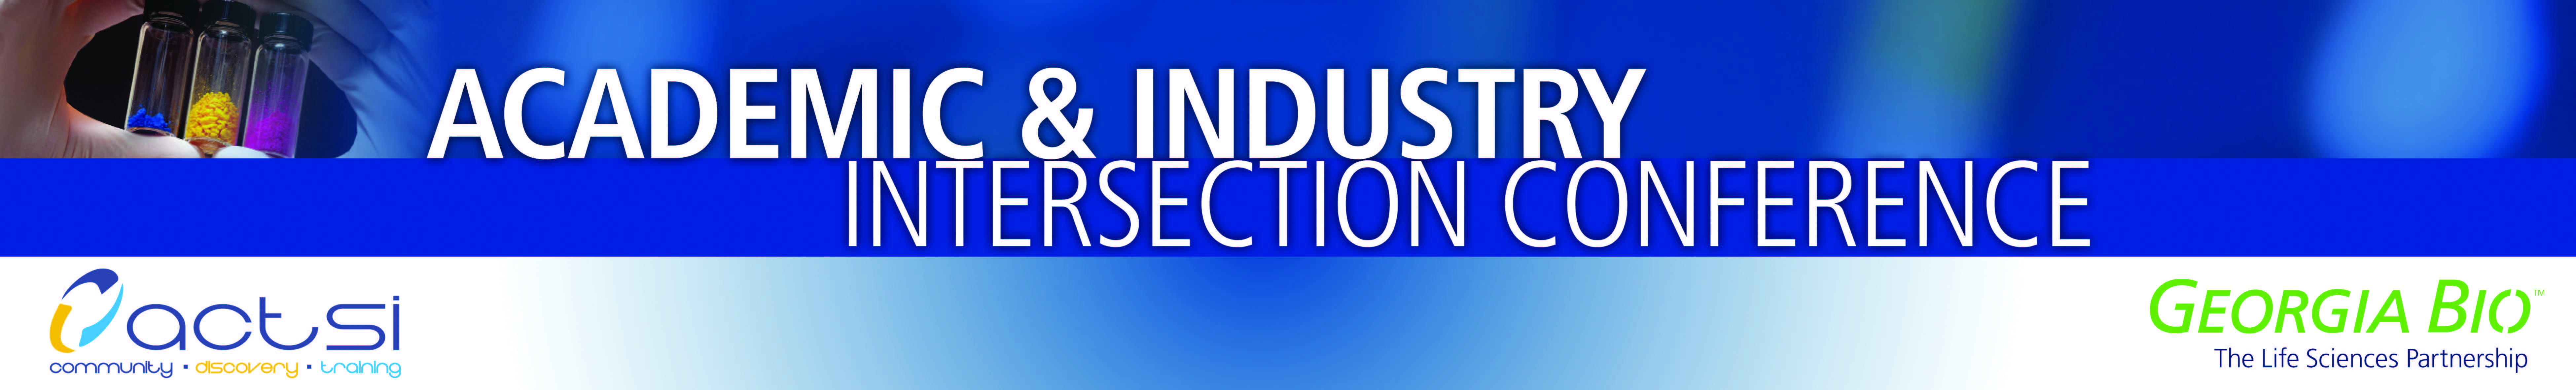 Academic and Industry Intersection Conference